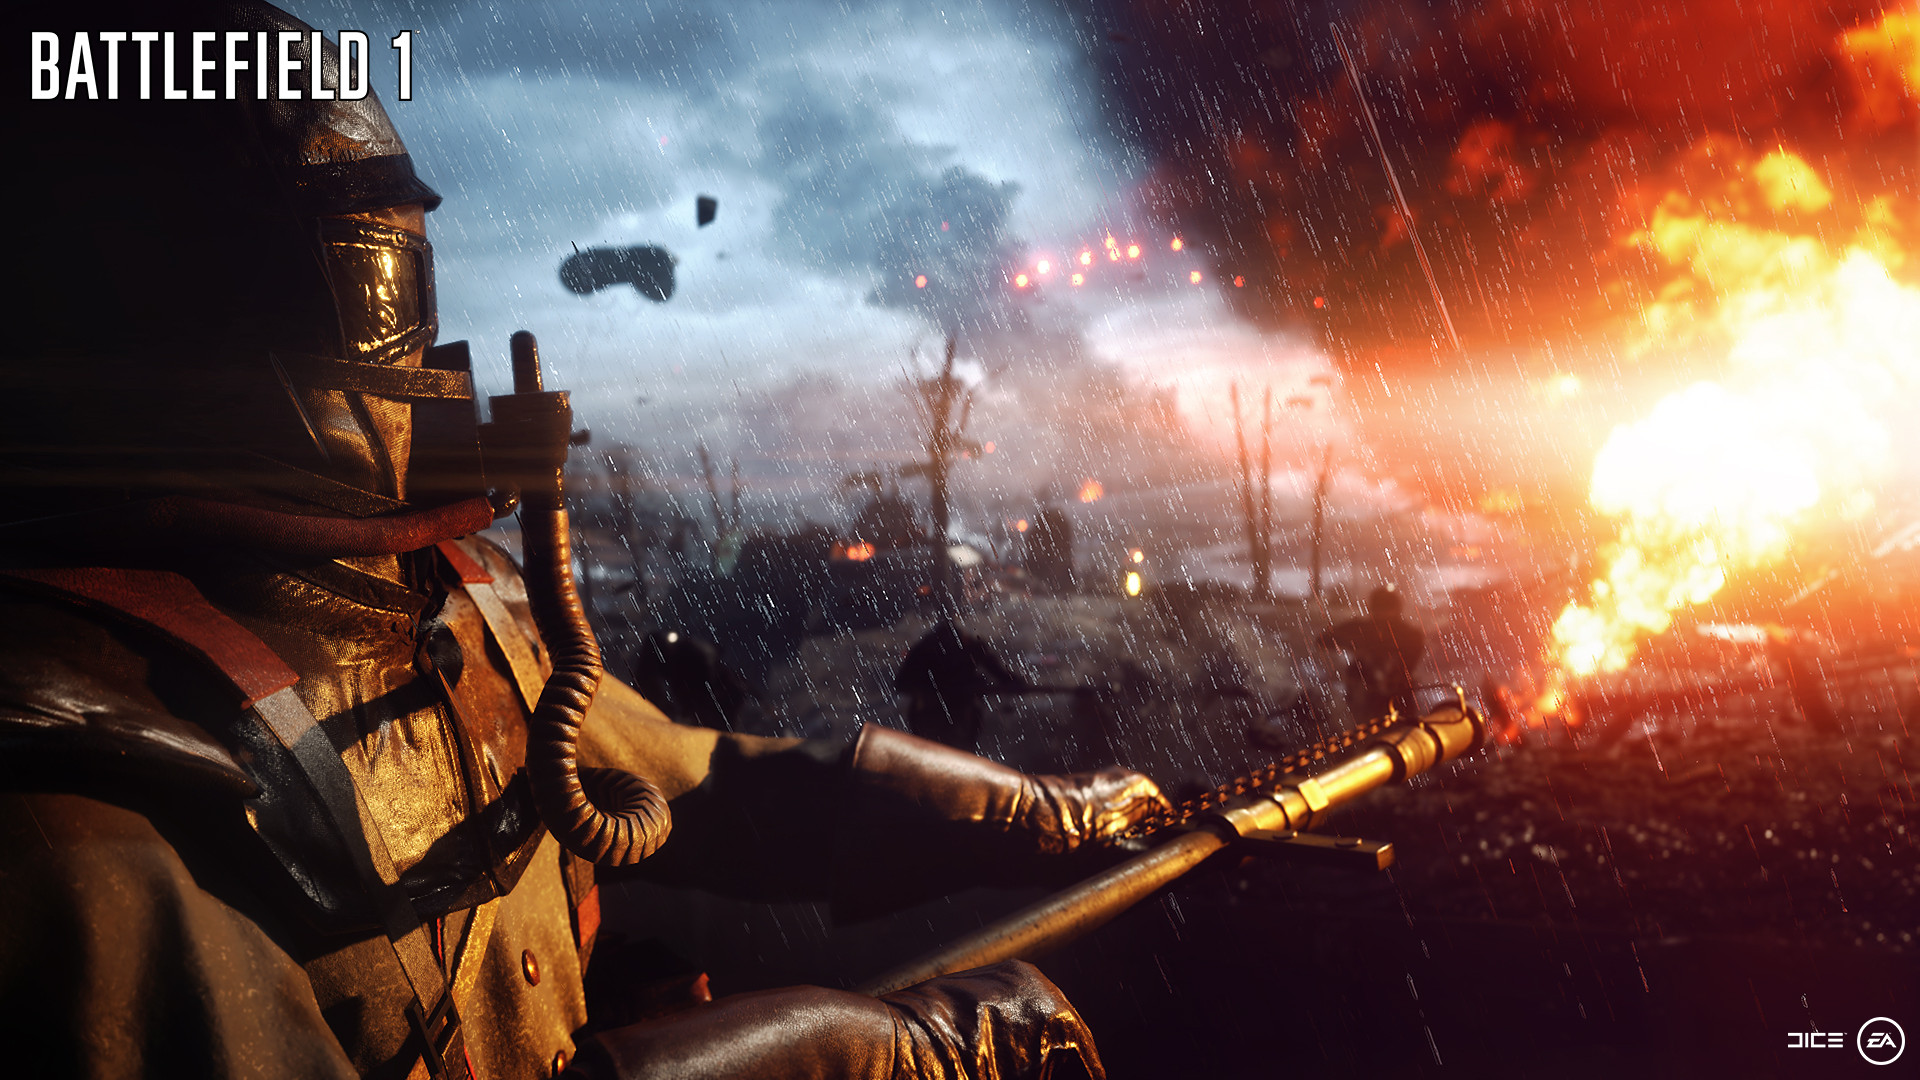 Battlefield 1 has been officially announced